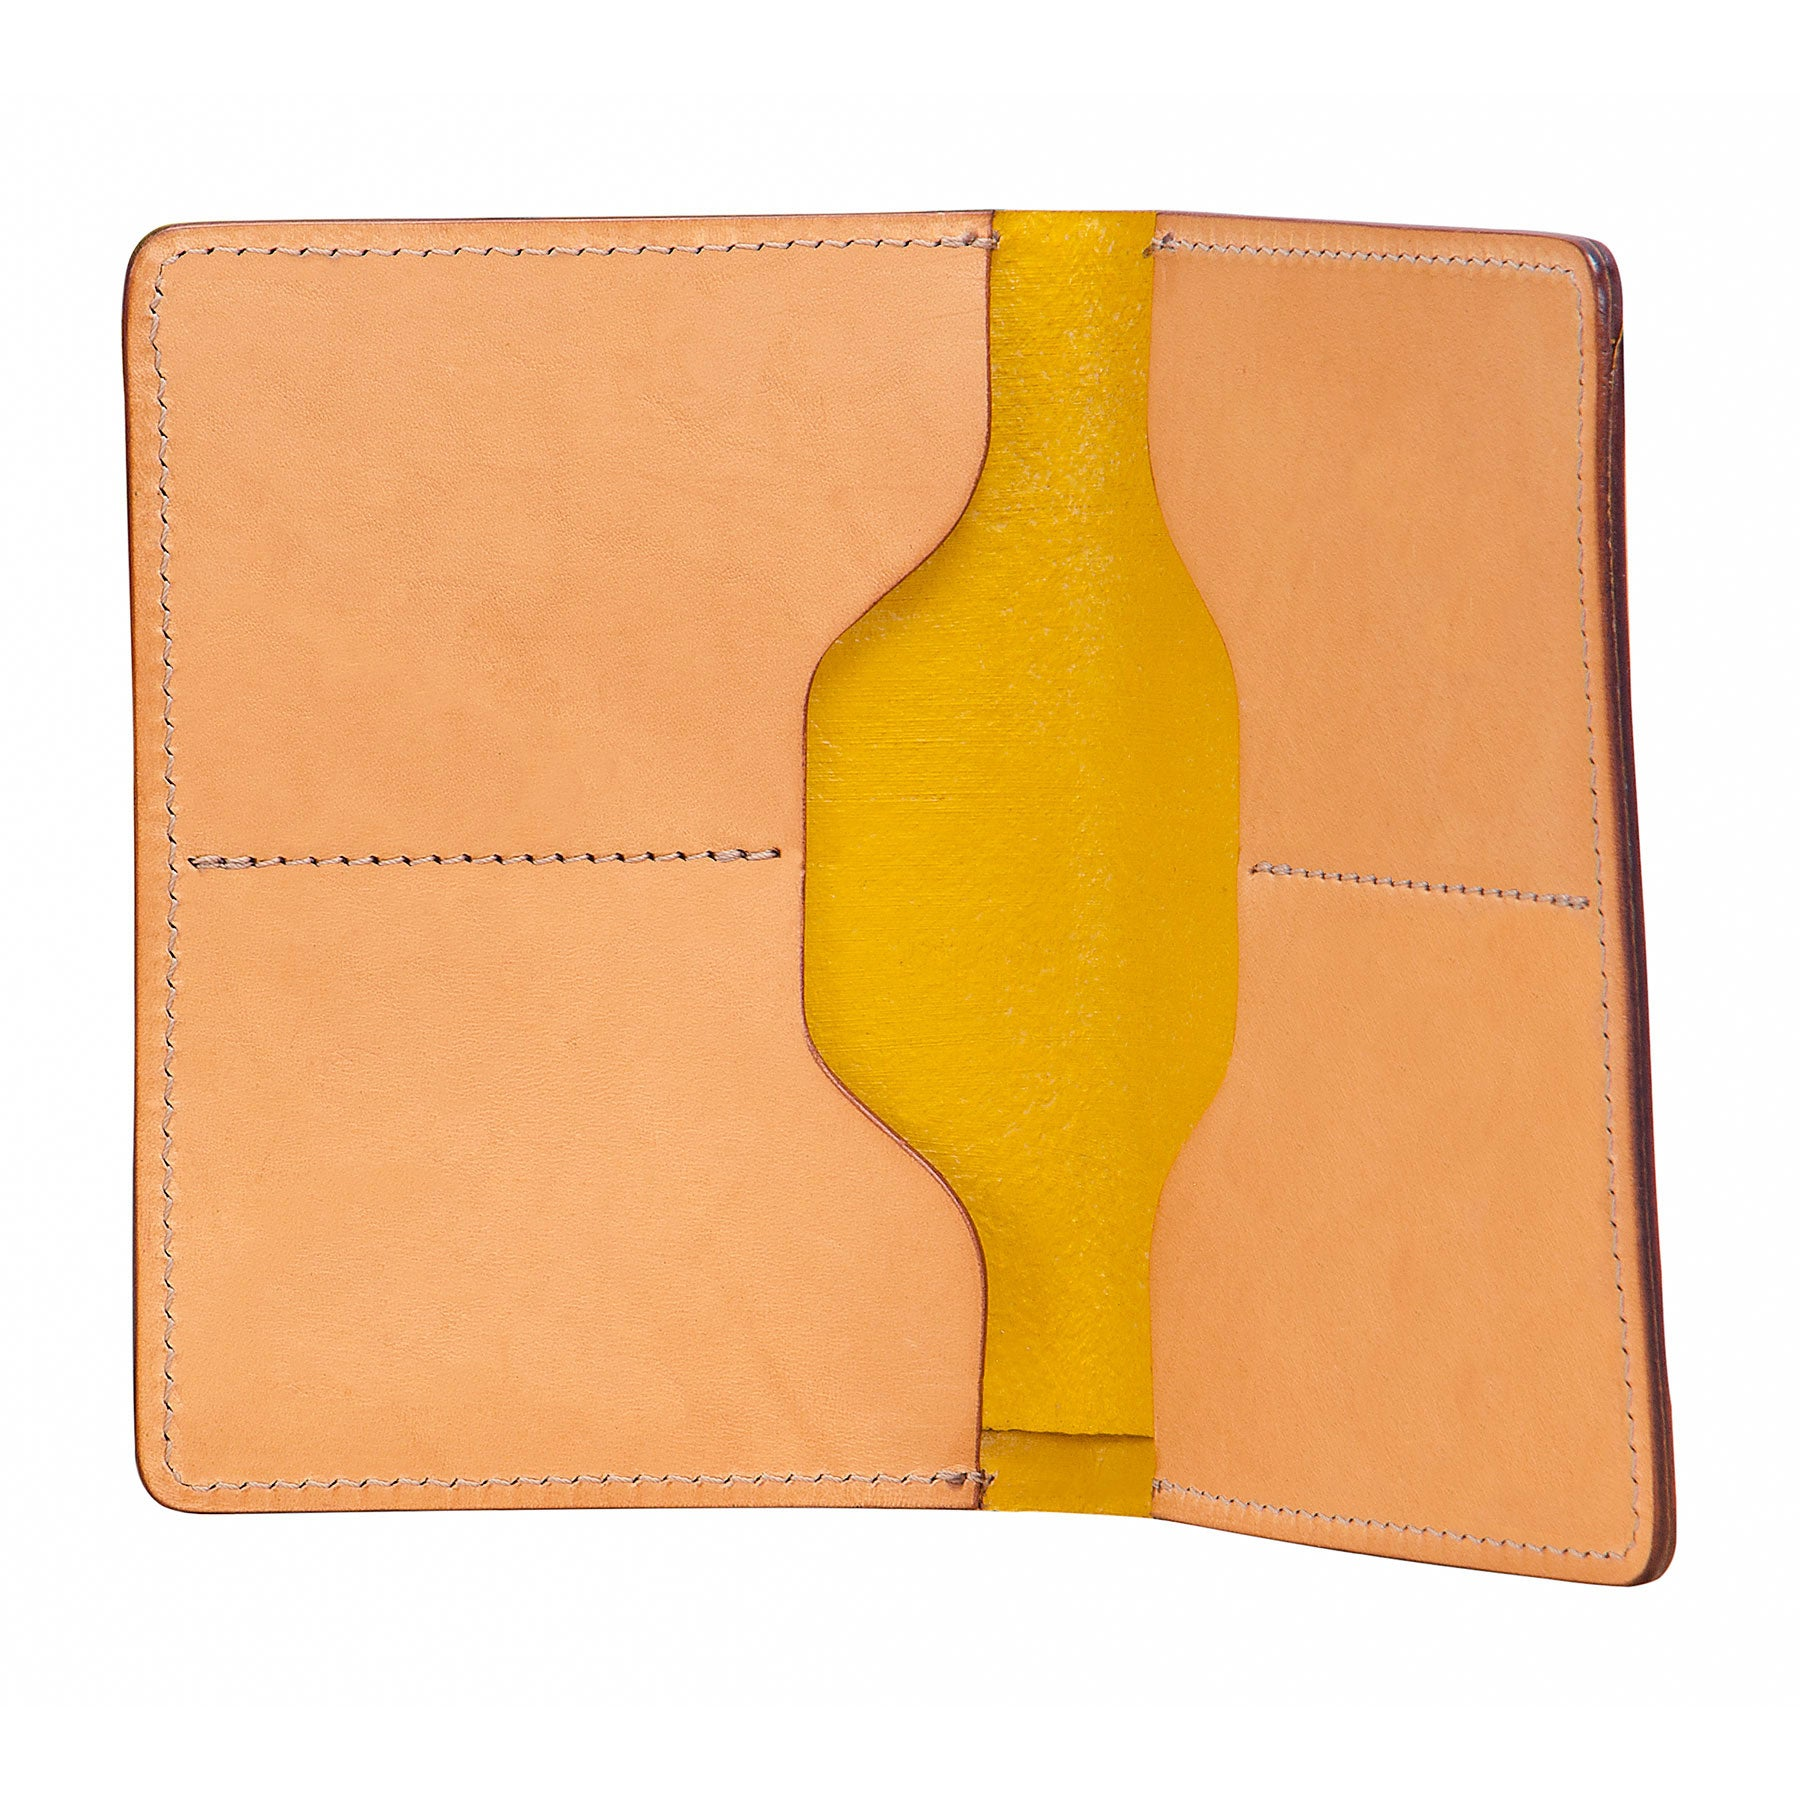 M-Wallet and Passport Wallet: Hand-Burnished Leather